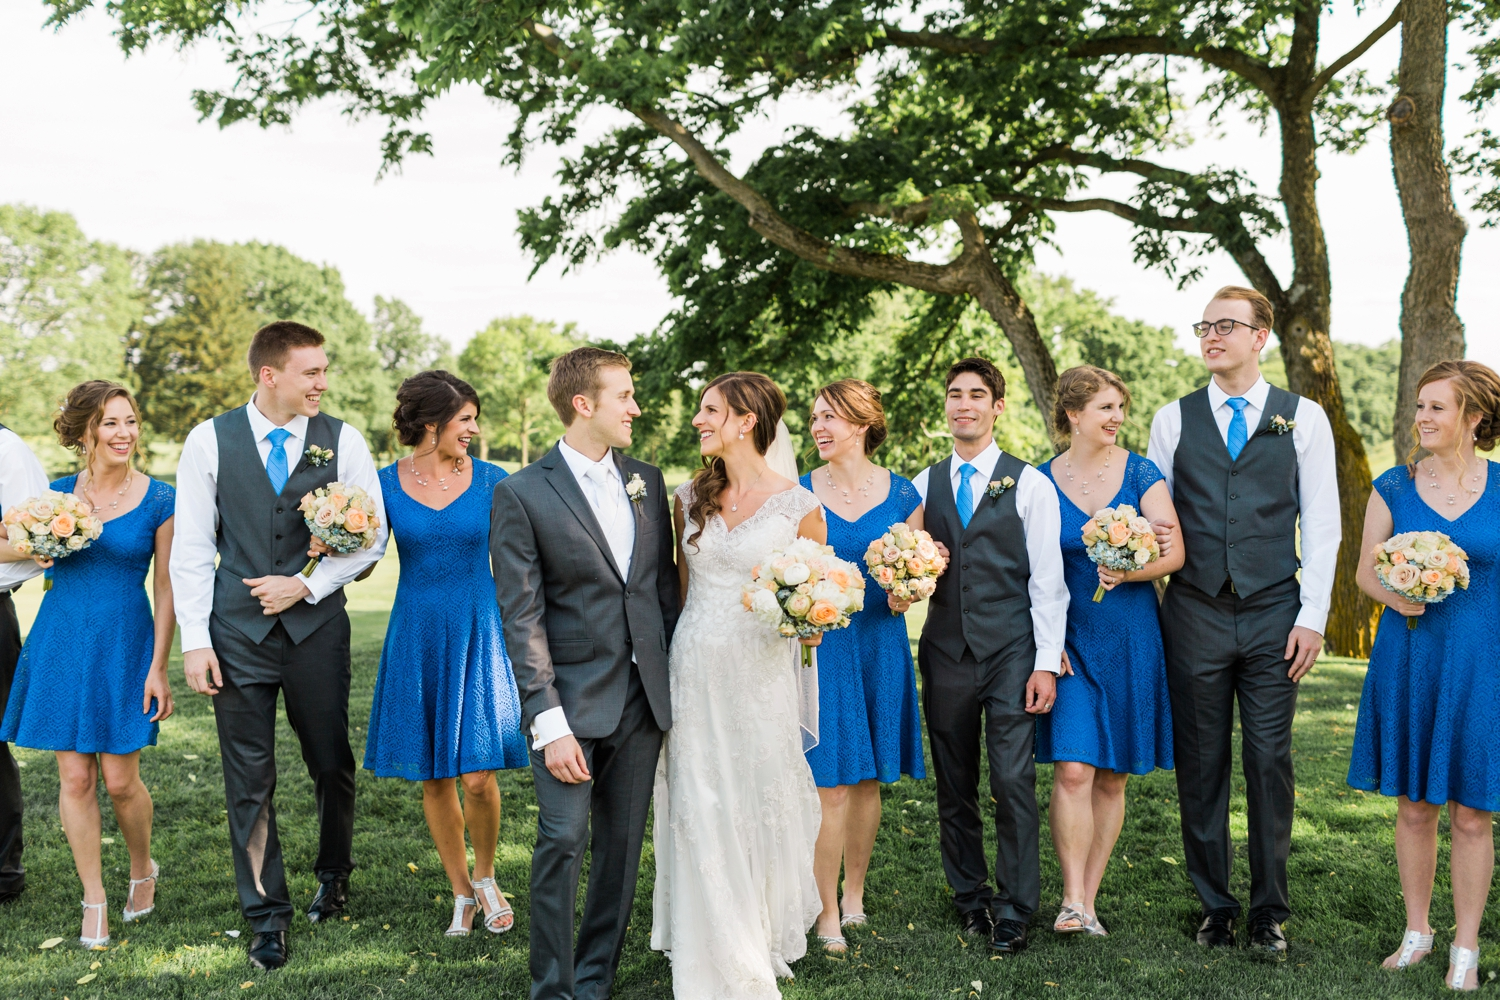 NCR_Country_Club_Kettering_Ohio_Wedding_Photography_Chloe_Luka_Photography_7155.jpg